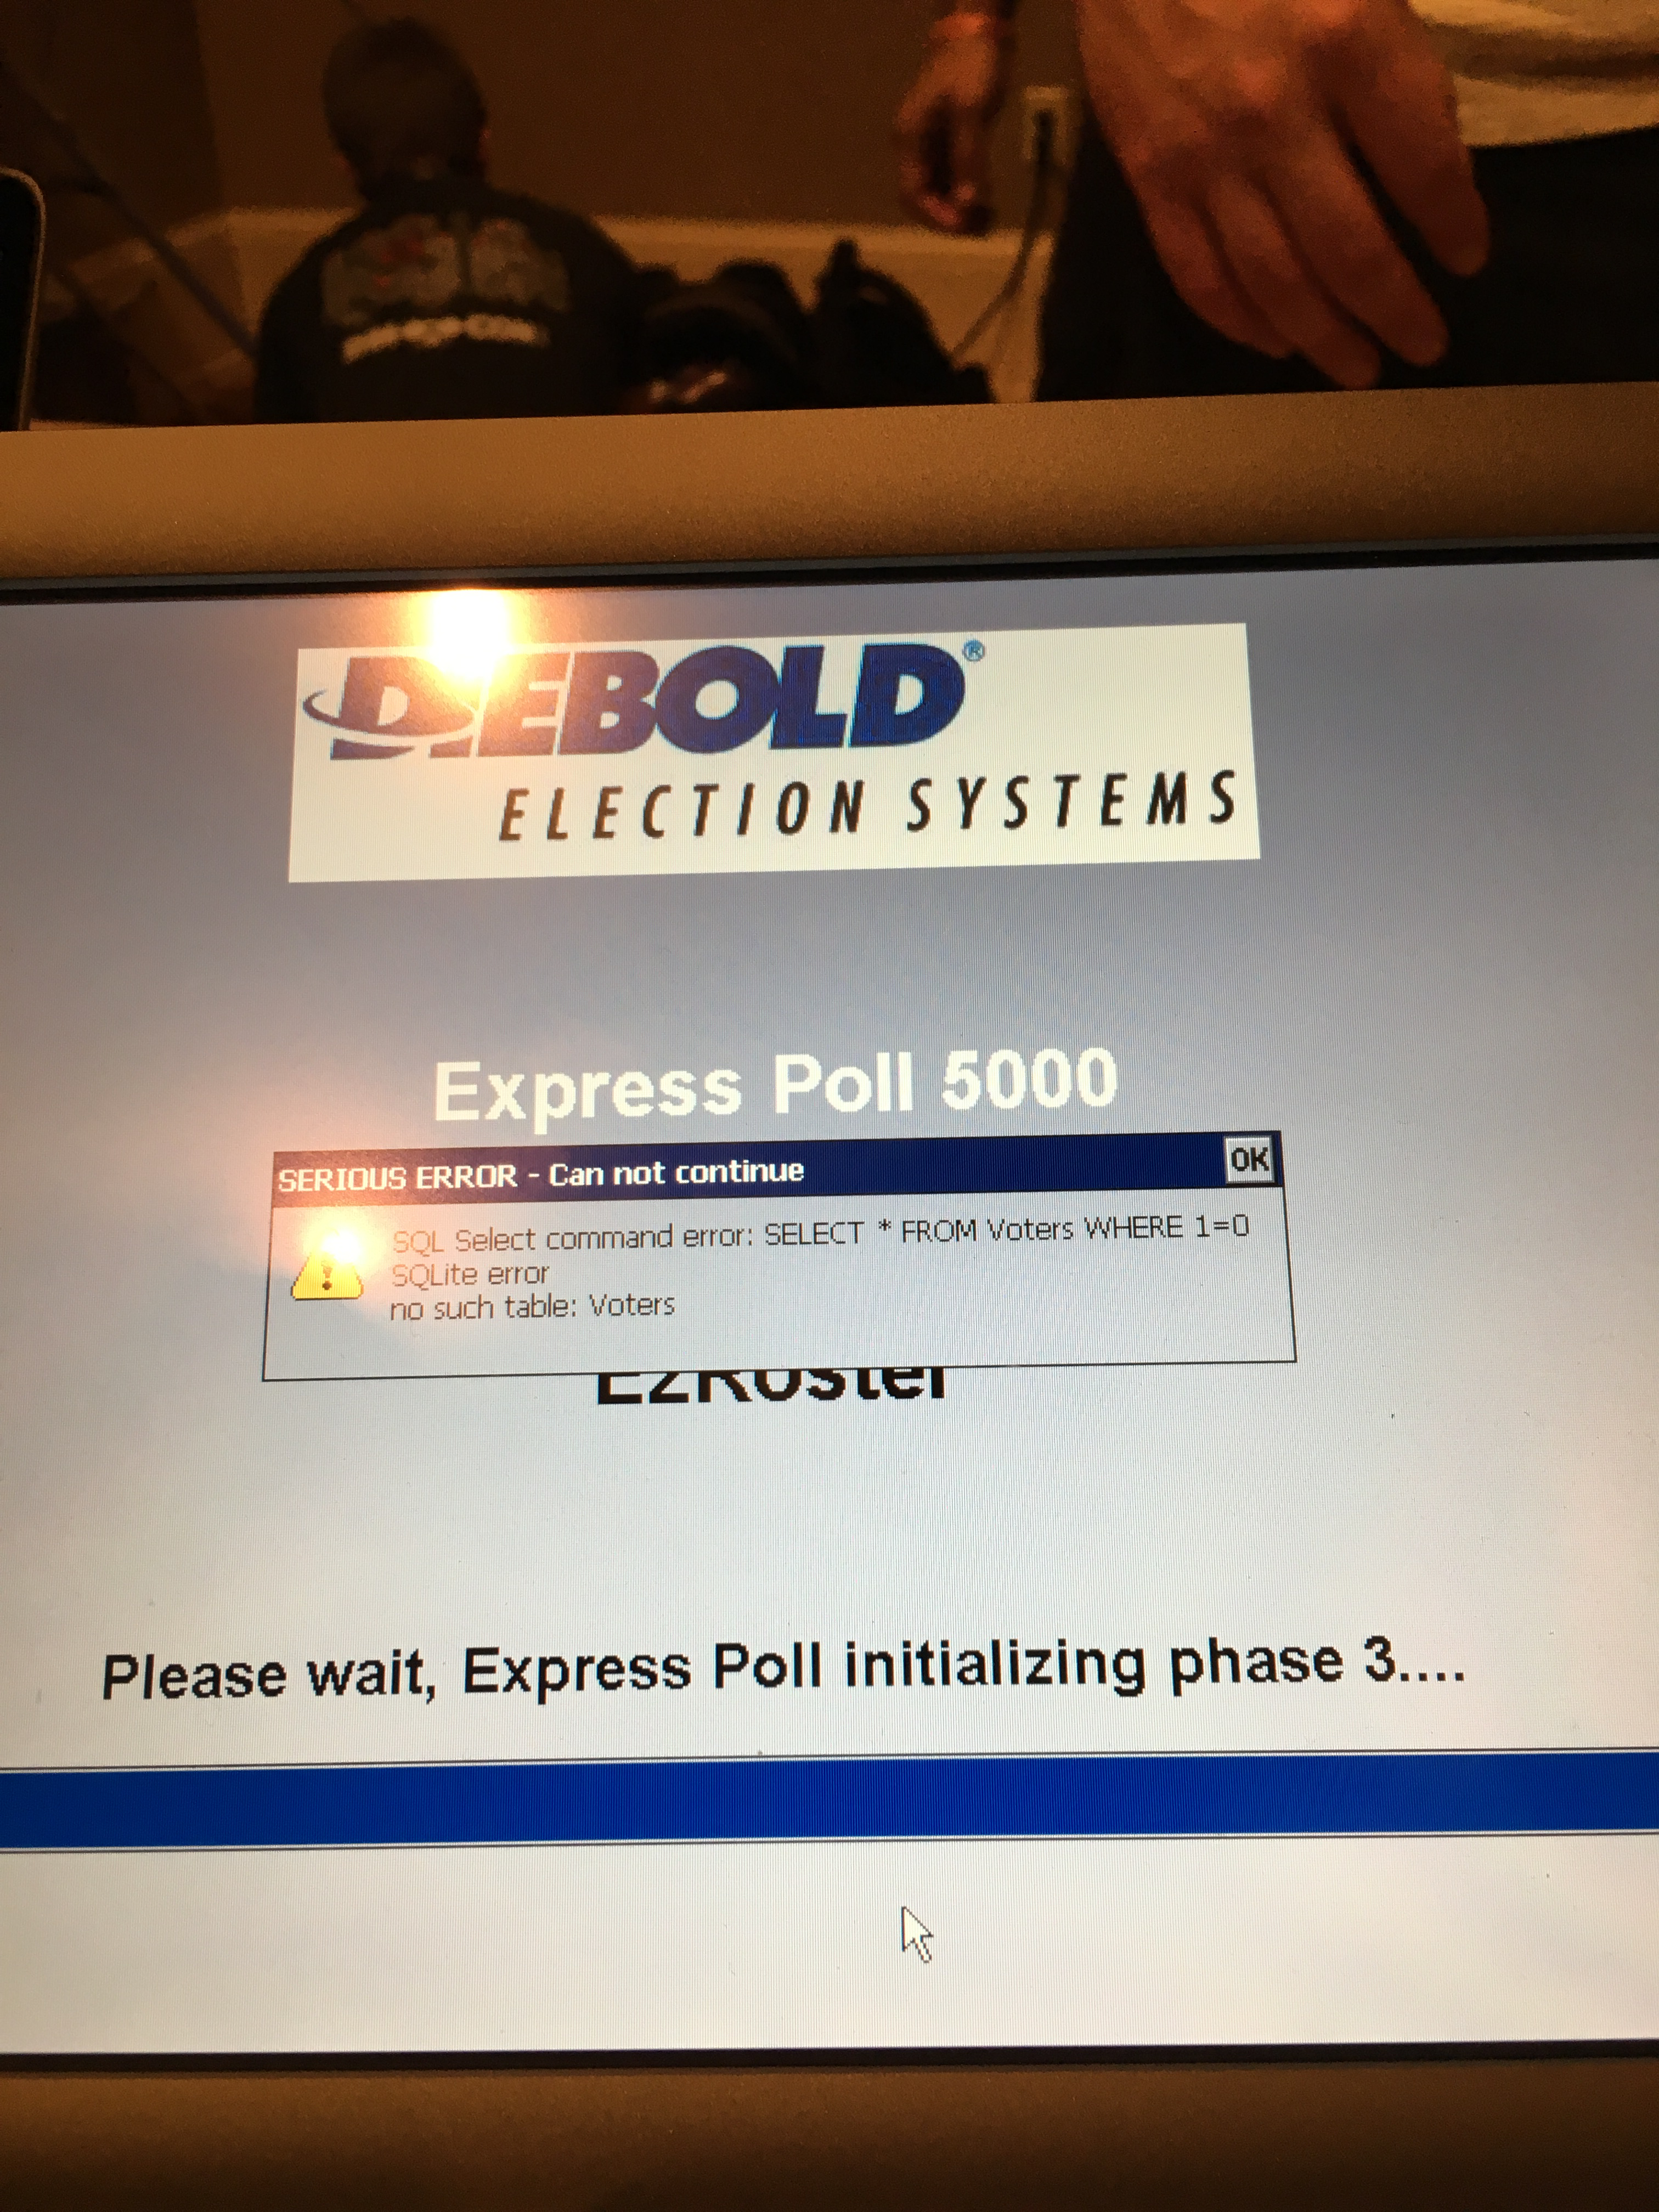 unsecure poll data in a file on Diebold Express Poll 5000 - DefCon